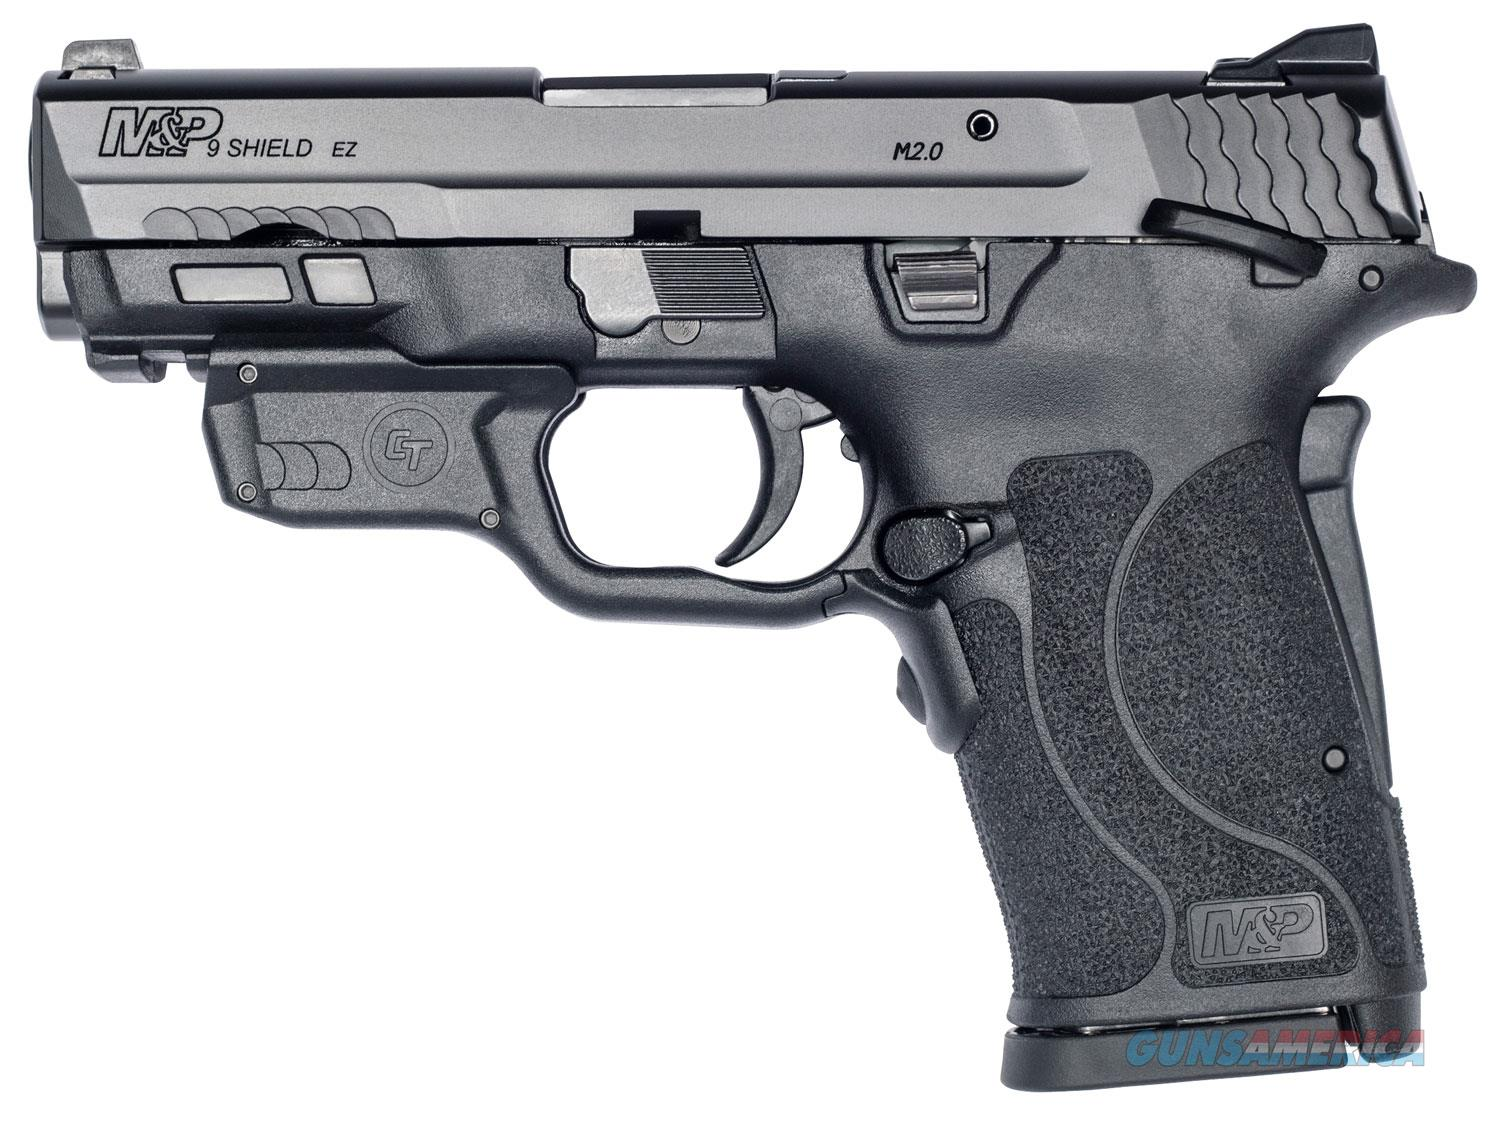 "Smith & Wesson 12438 M&P 9 Shield EZ M2.0 9mm Luger 3.68"" 8+1 Black Polymer Grip Thumb Safety Red Crimson Trace Laser  Guns > Pistols > Smith & Wesson Pistols - Autos > Shield"